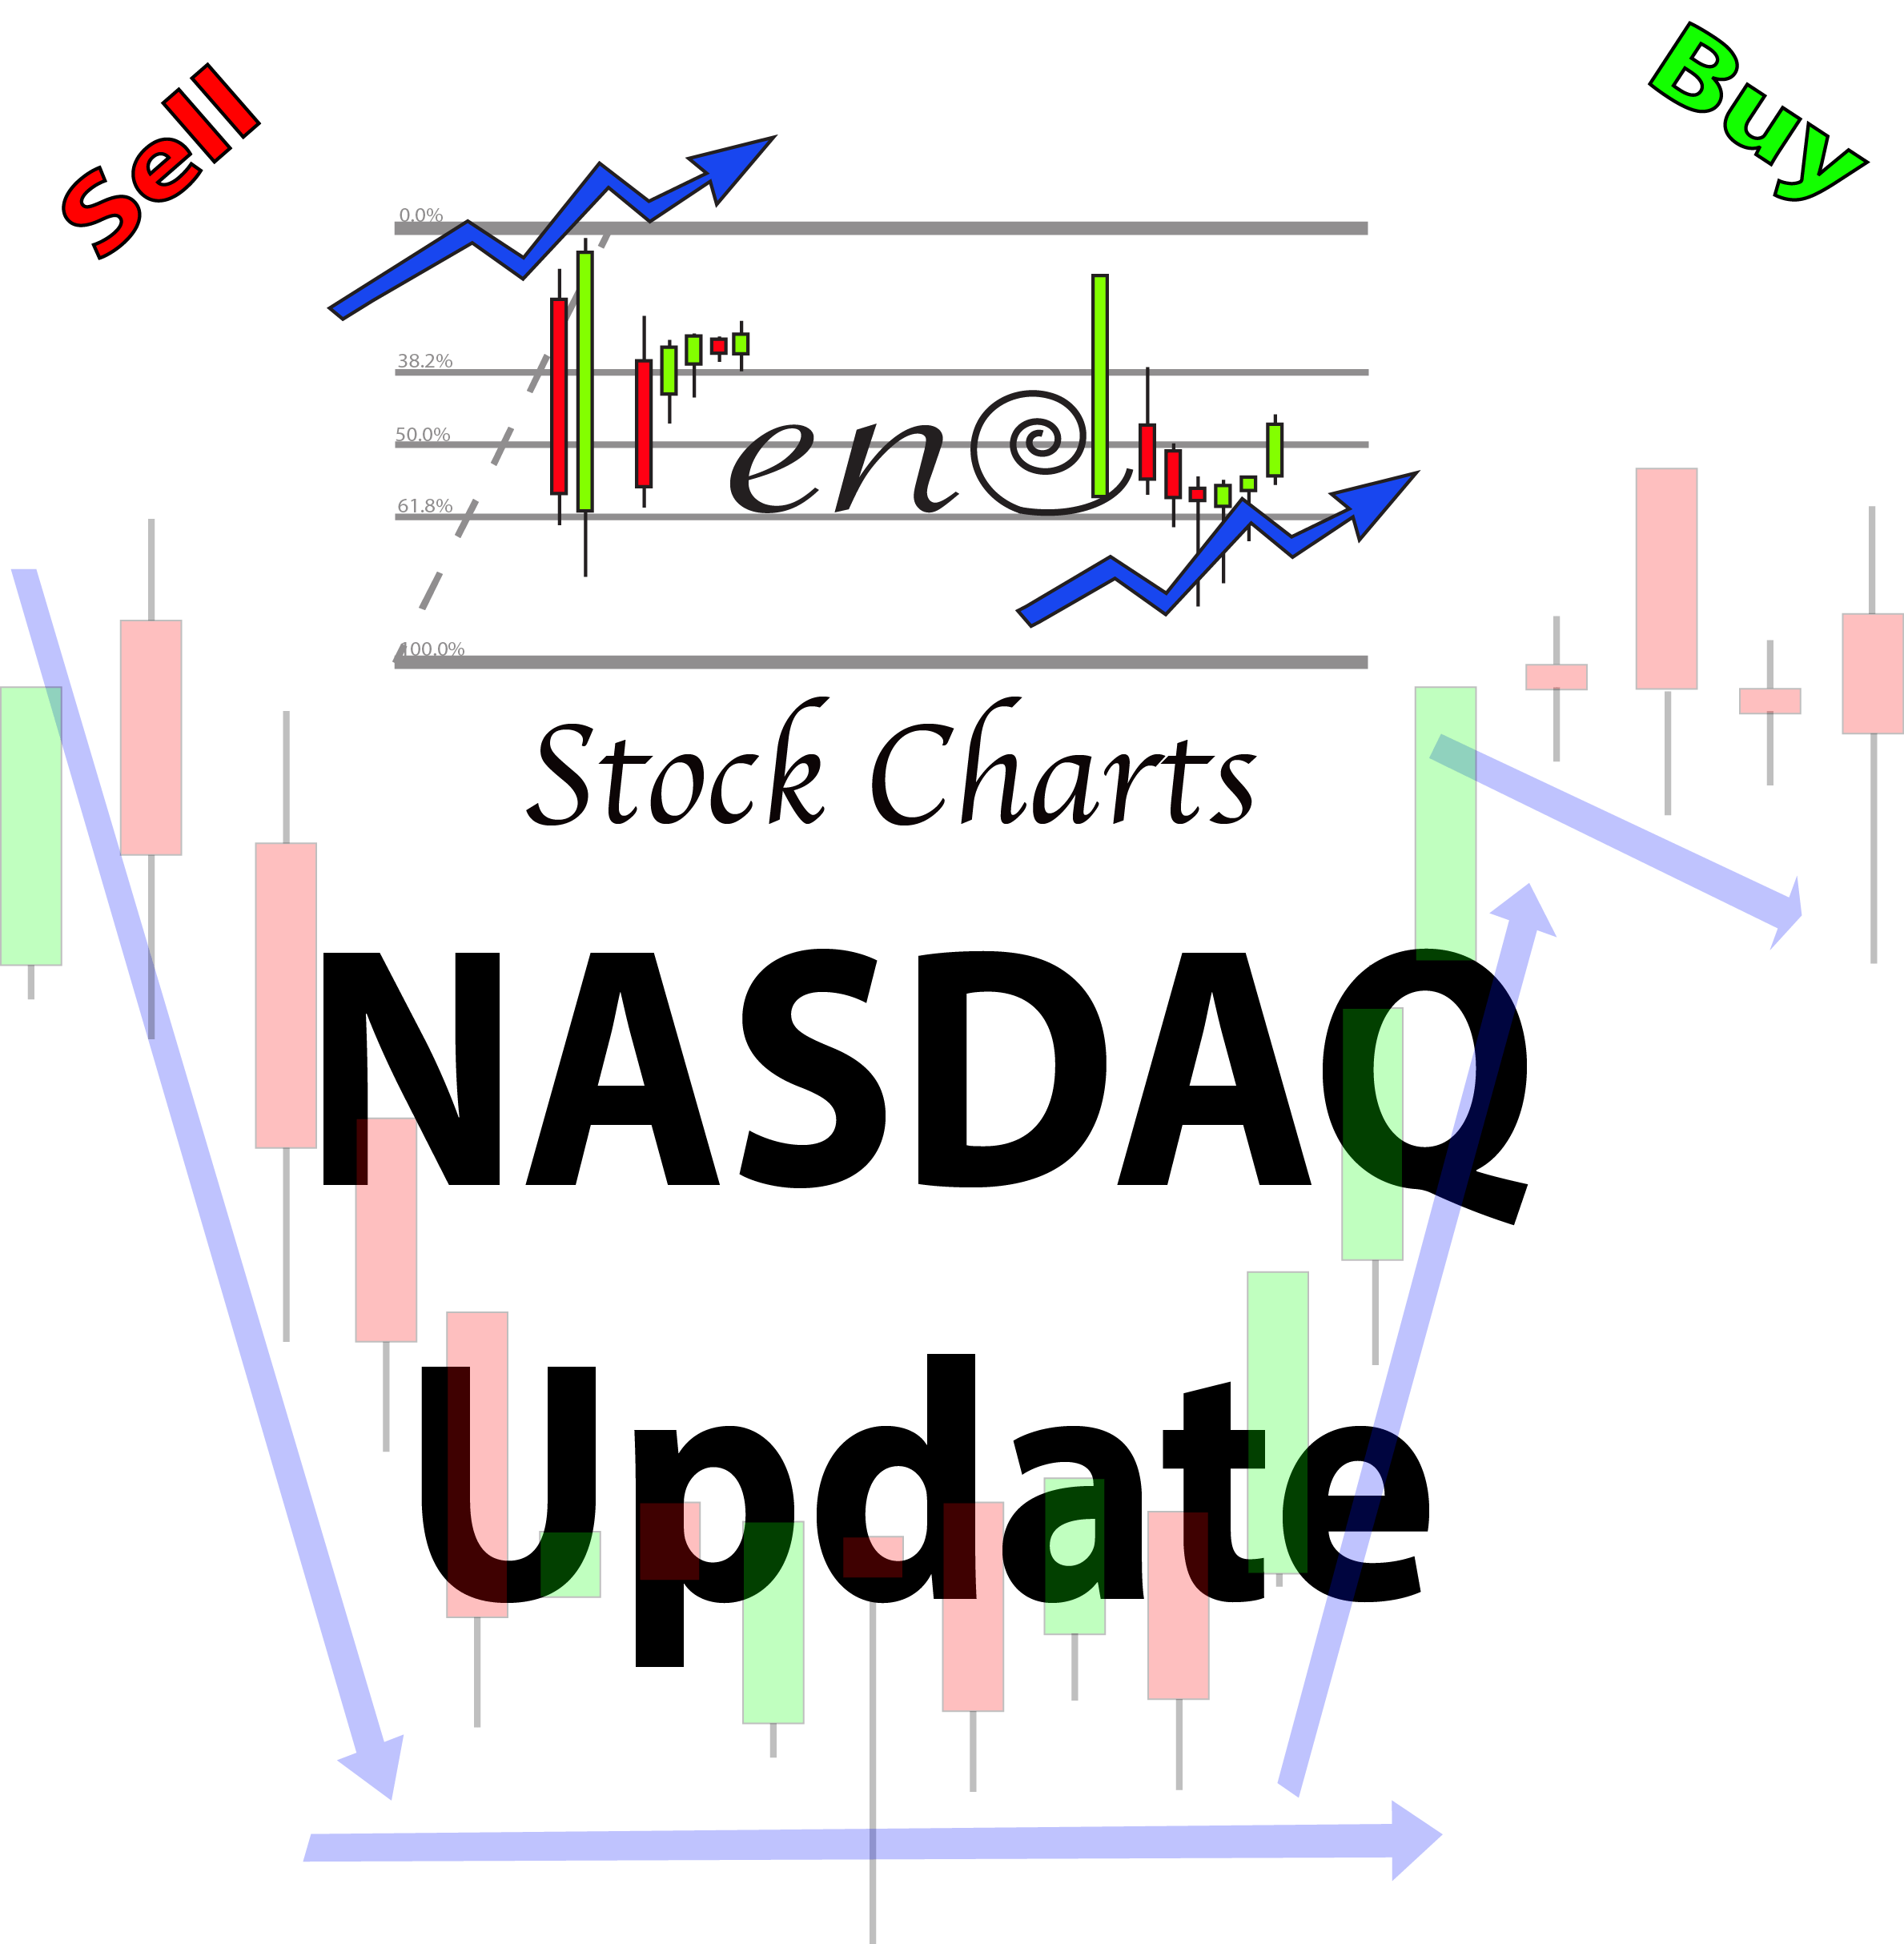 NASDAQ Composite 2/17/2016 – Deploy Cash, But Be Careful